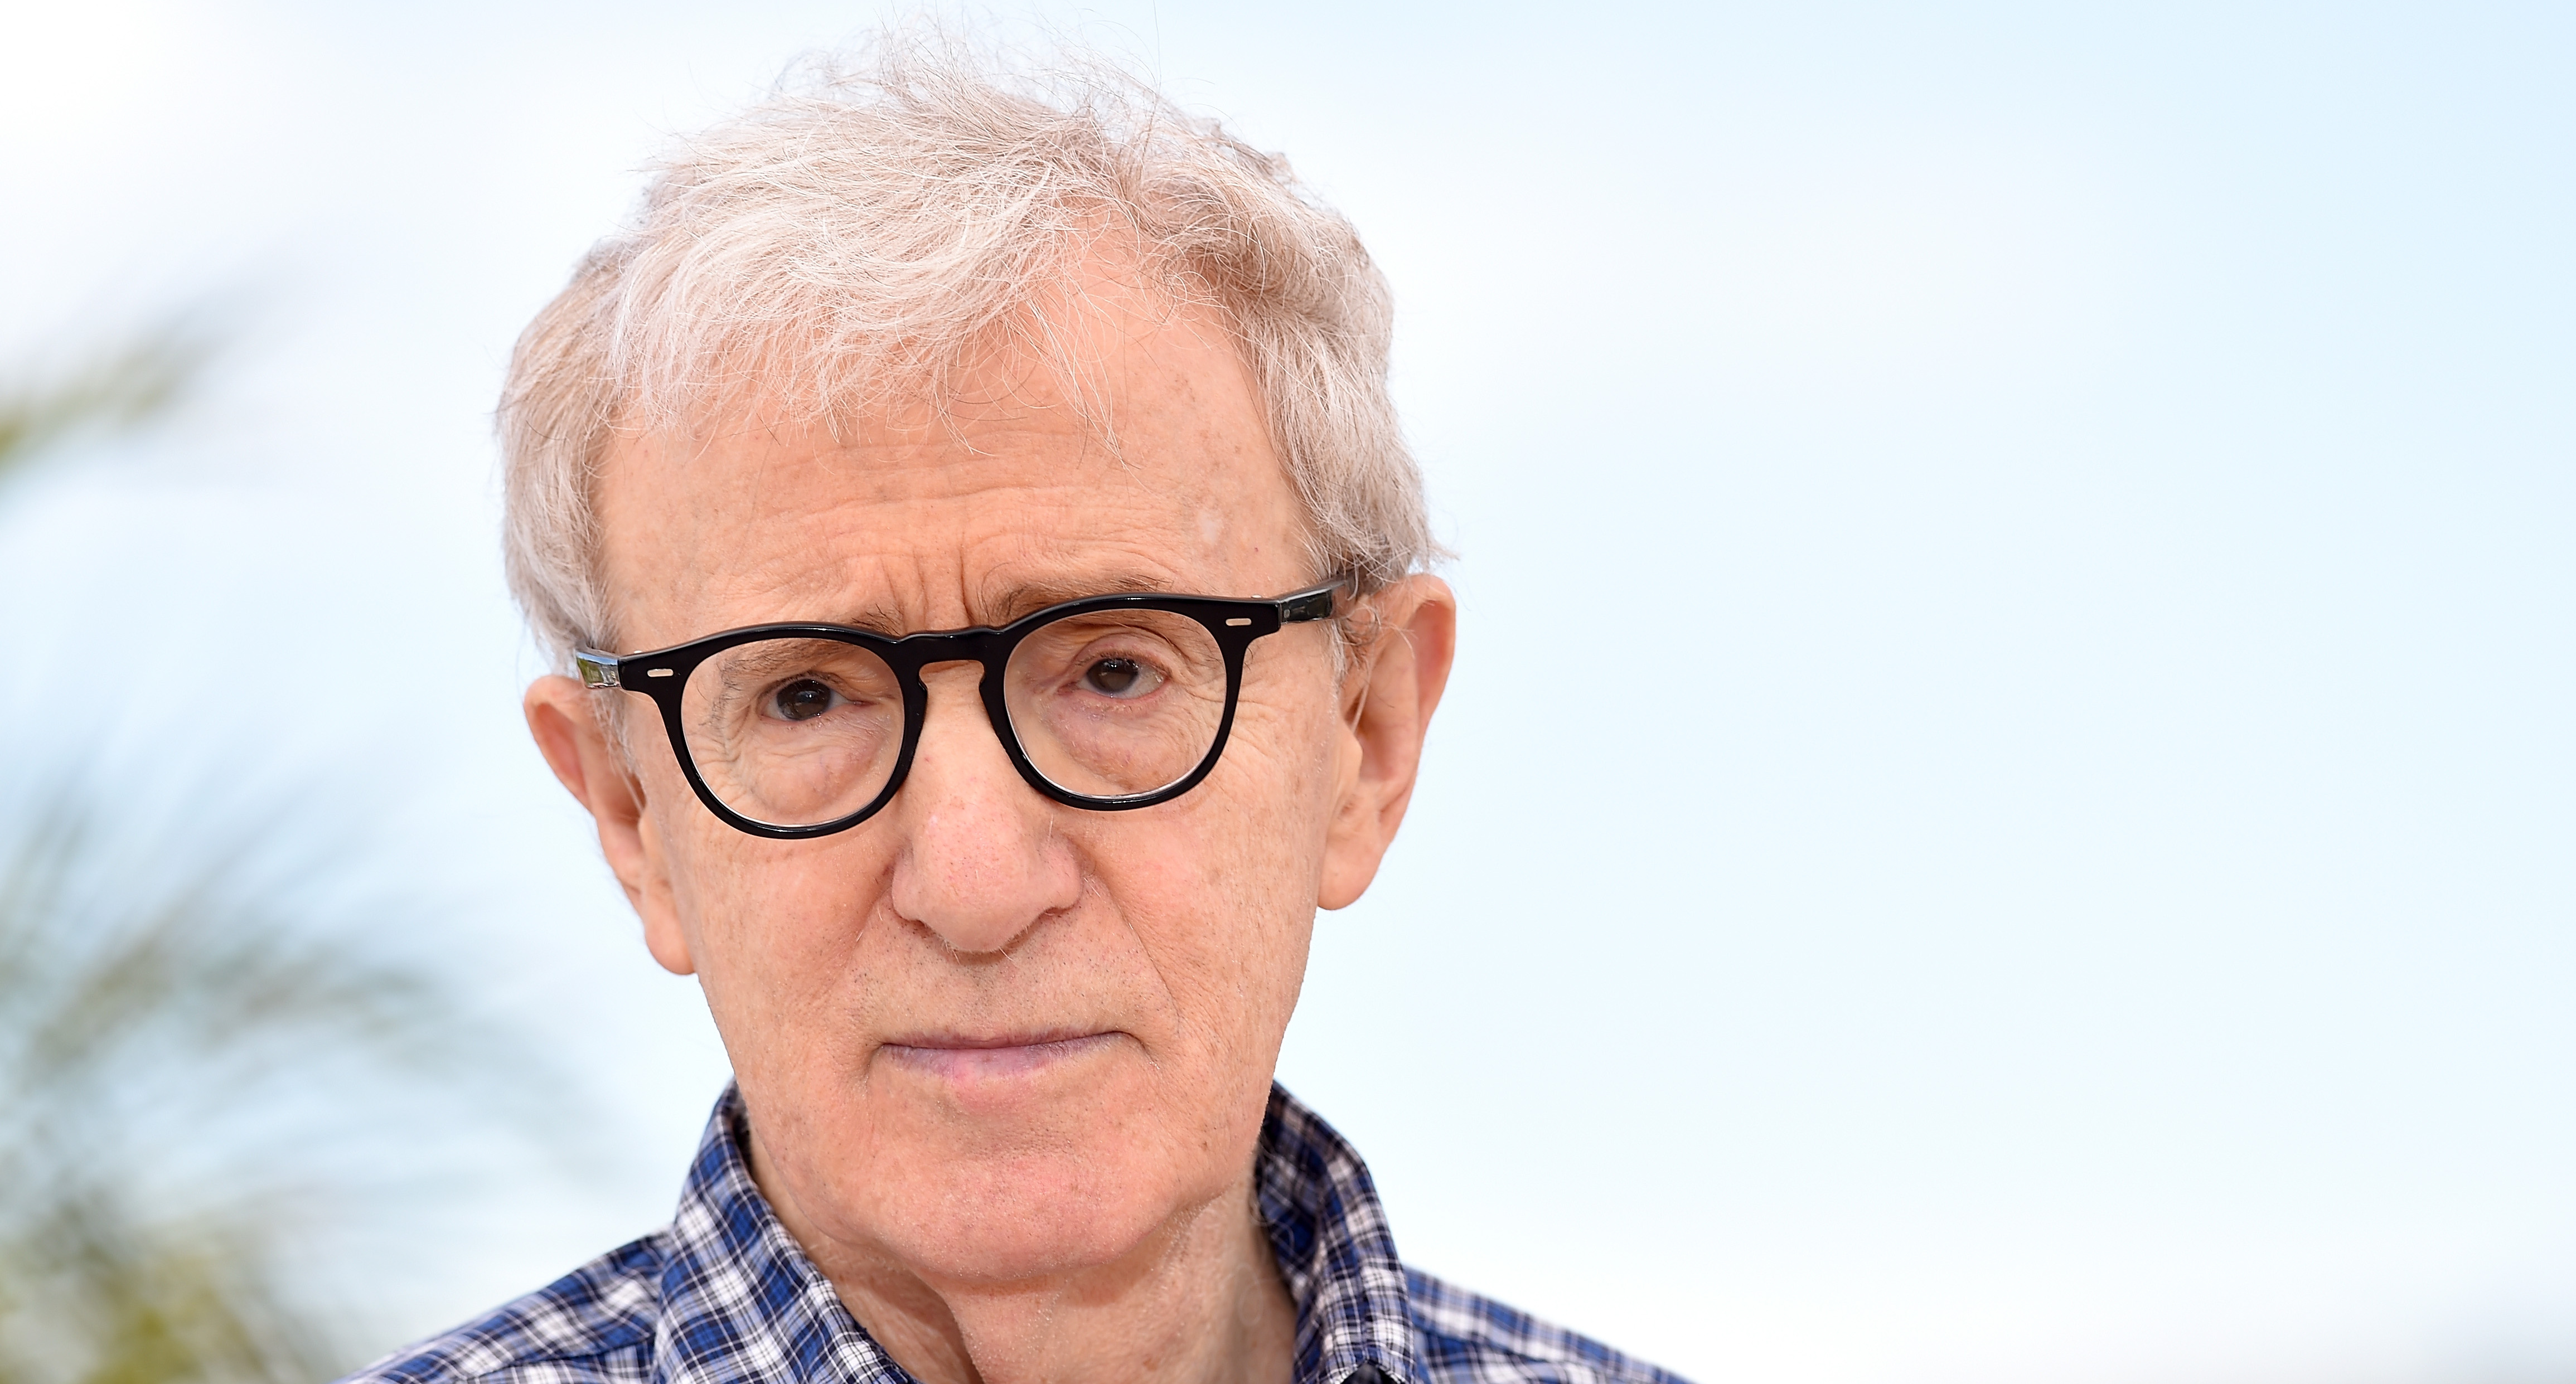 Woody Allen Memoir Gets Mixed Reviews